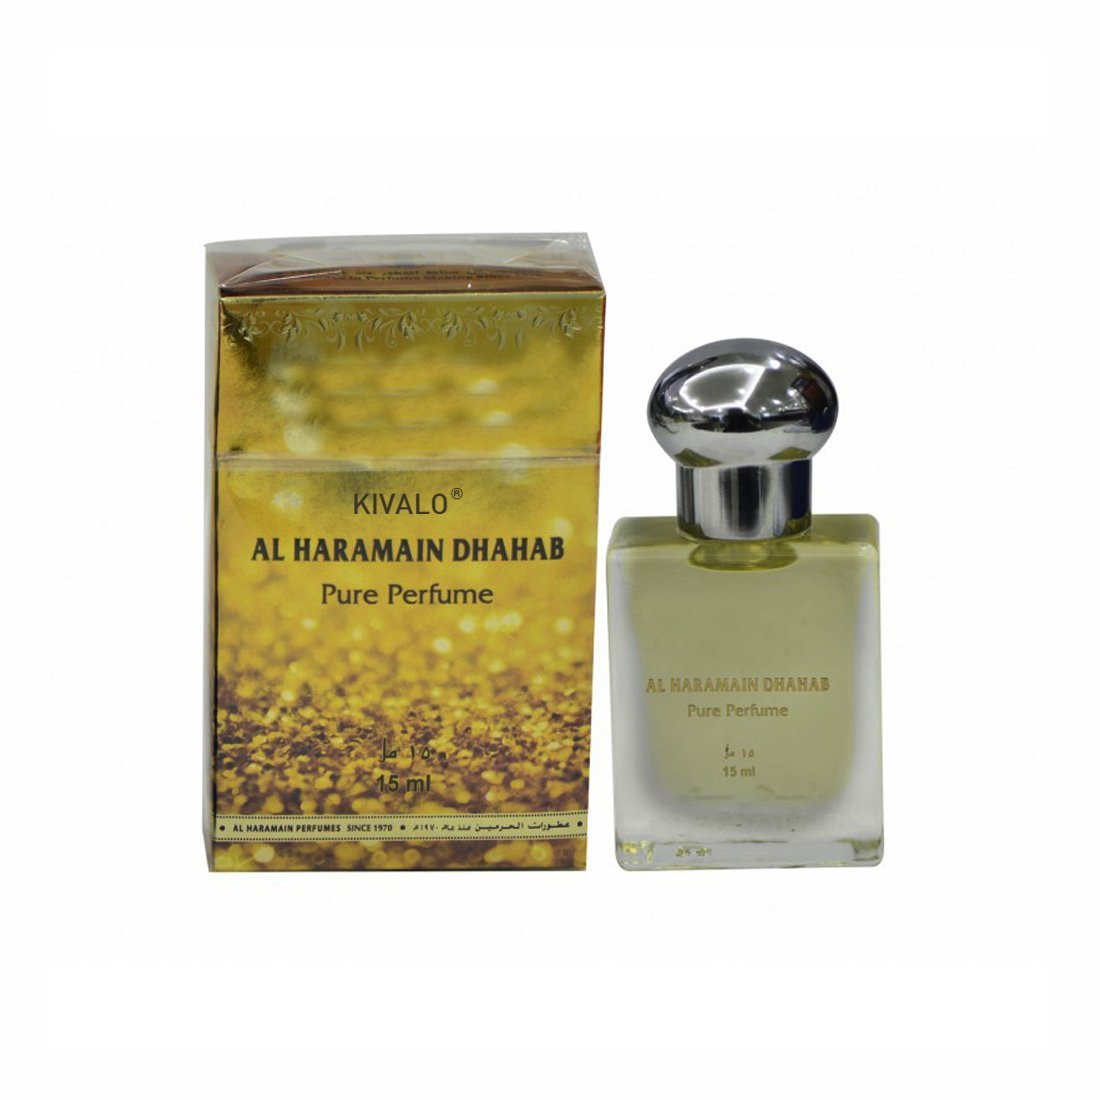 Al Haramain Dhahab & Naeem Fragrance Pure Original Roll on Perfume Oil Pack of 2 (Attar) - 2 x 15 ml